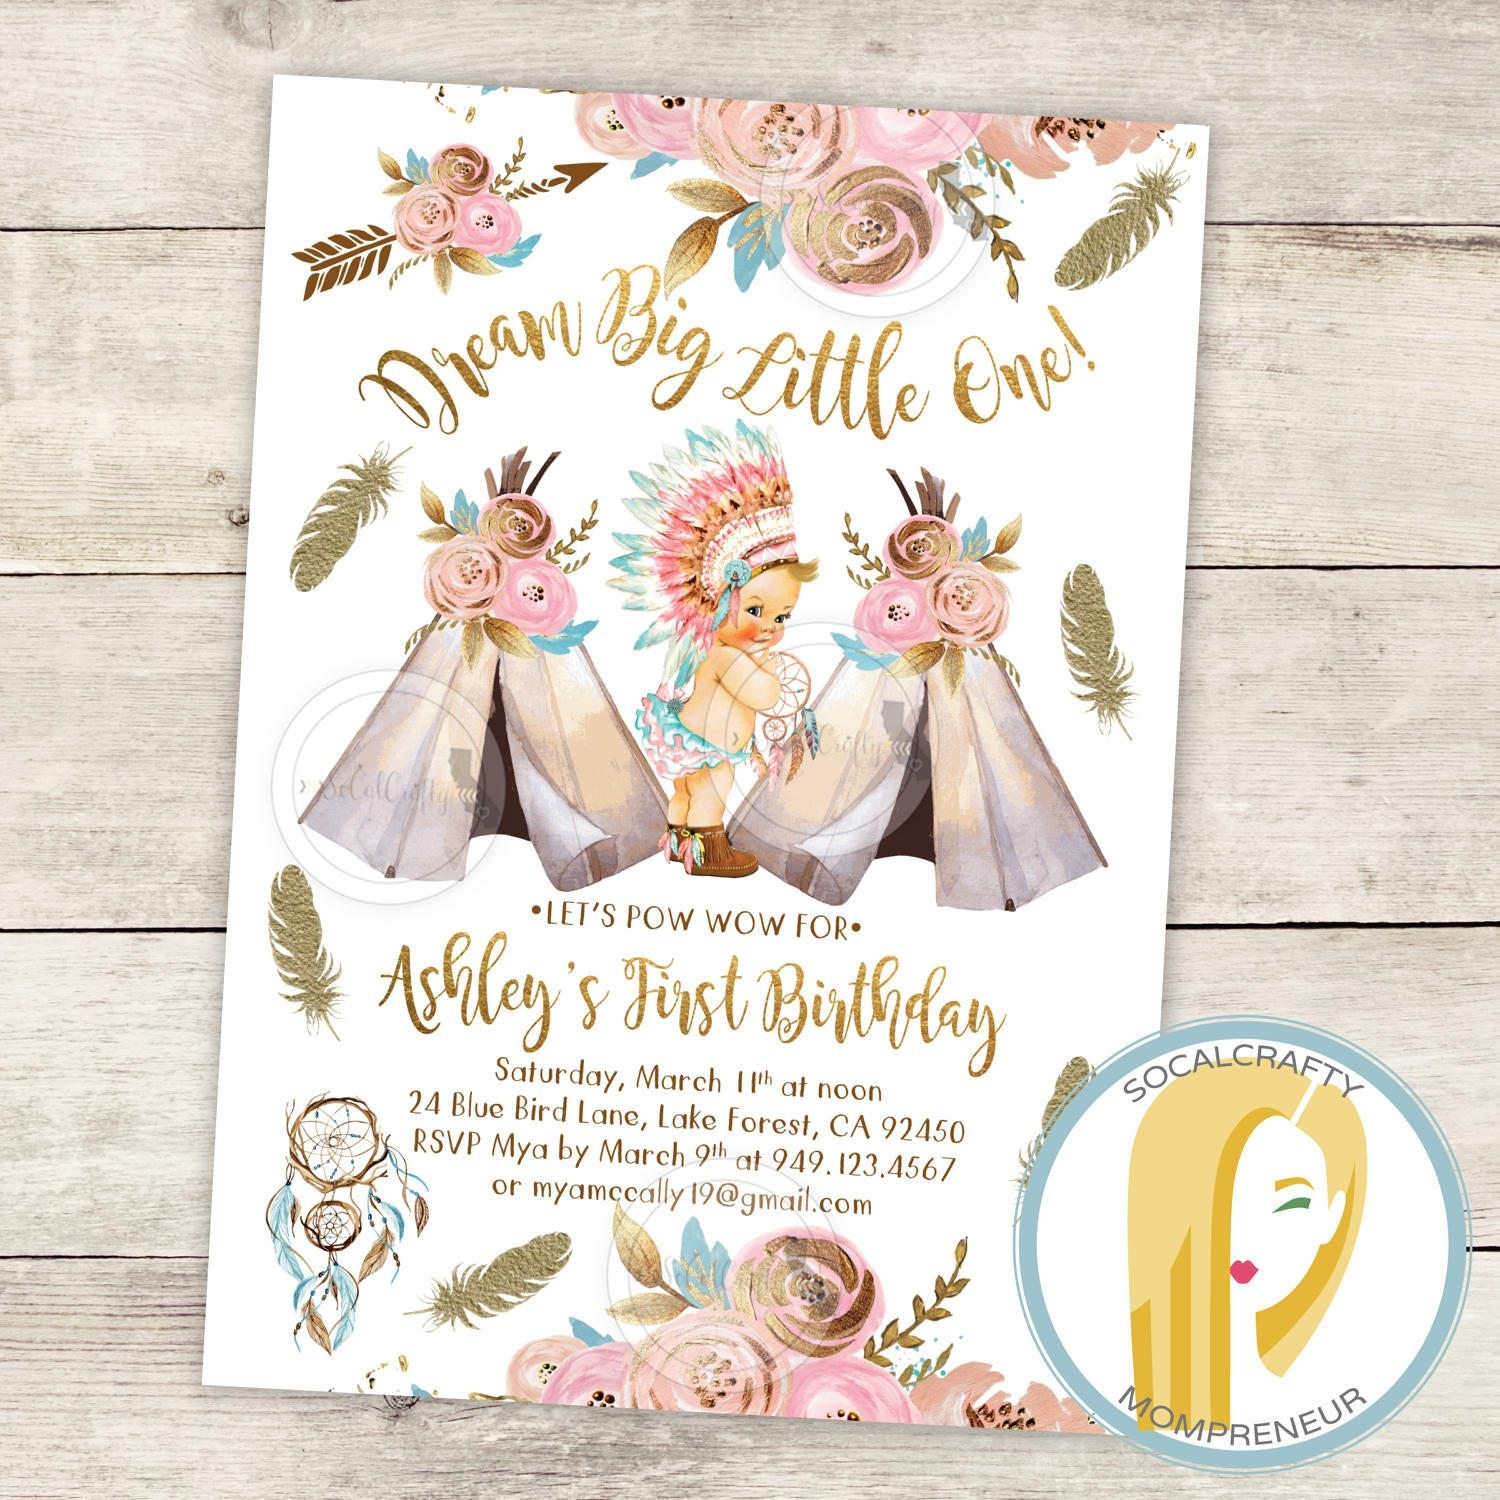 Dream Big Little One Birthday Party Invitation Dreamcatcher